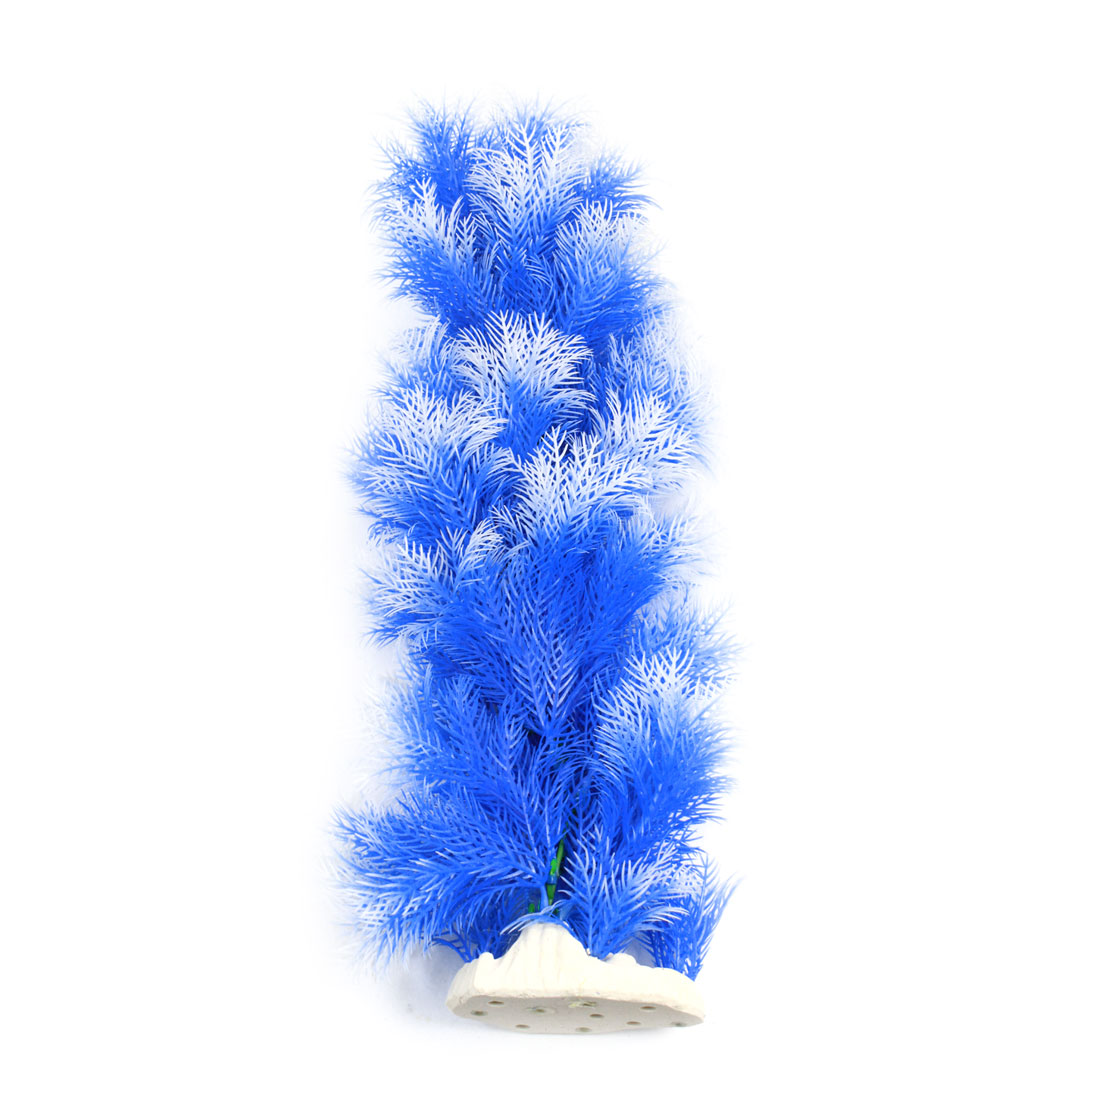 "Aquarium Fish Tank Landscaping Artificial Emulational Underwater Water Plant Tree Decor Blue White 19"" Height"